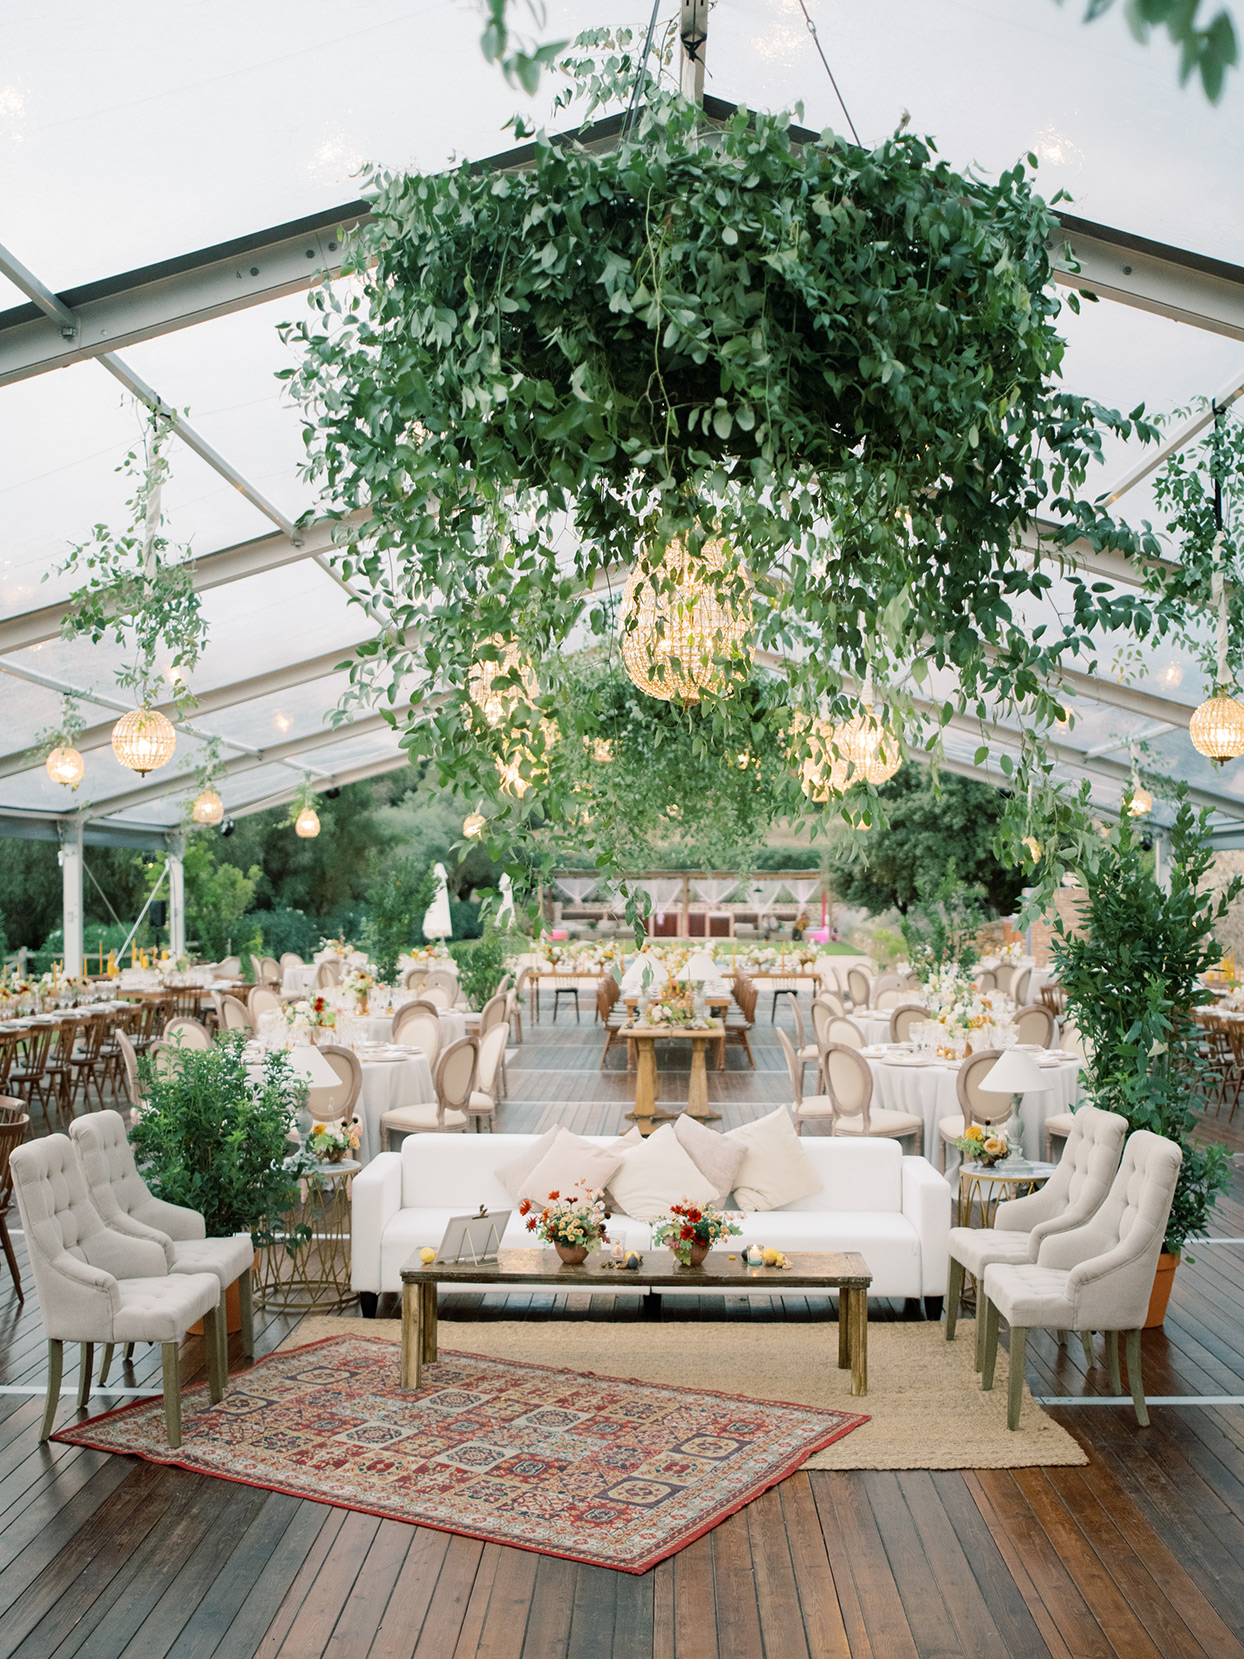 alyssa macia wedding reception elegant lounge area and eating tables inside tent